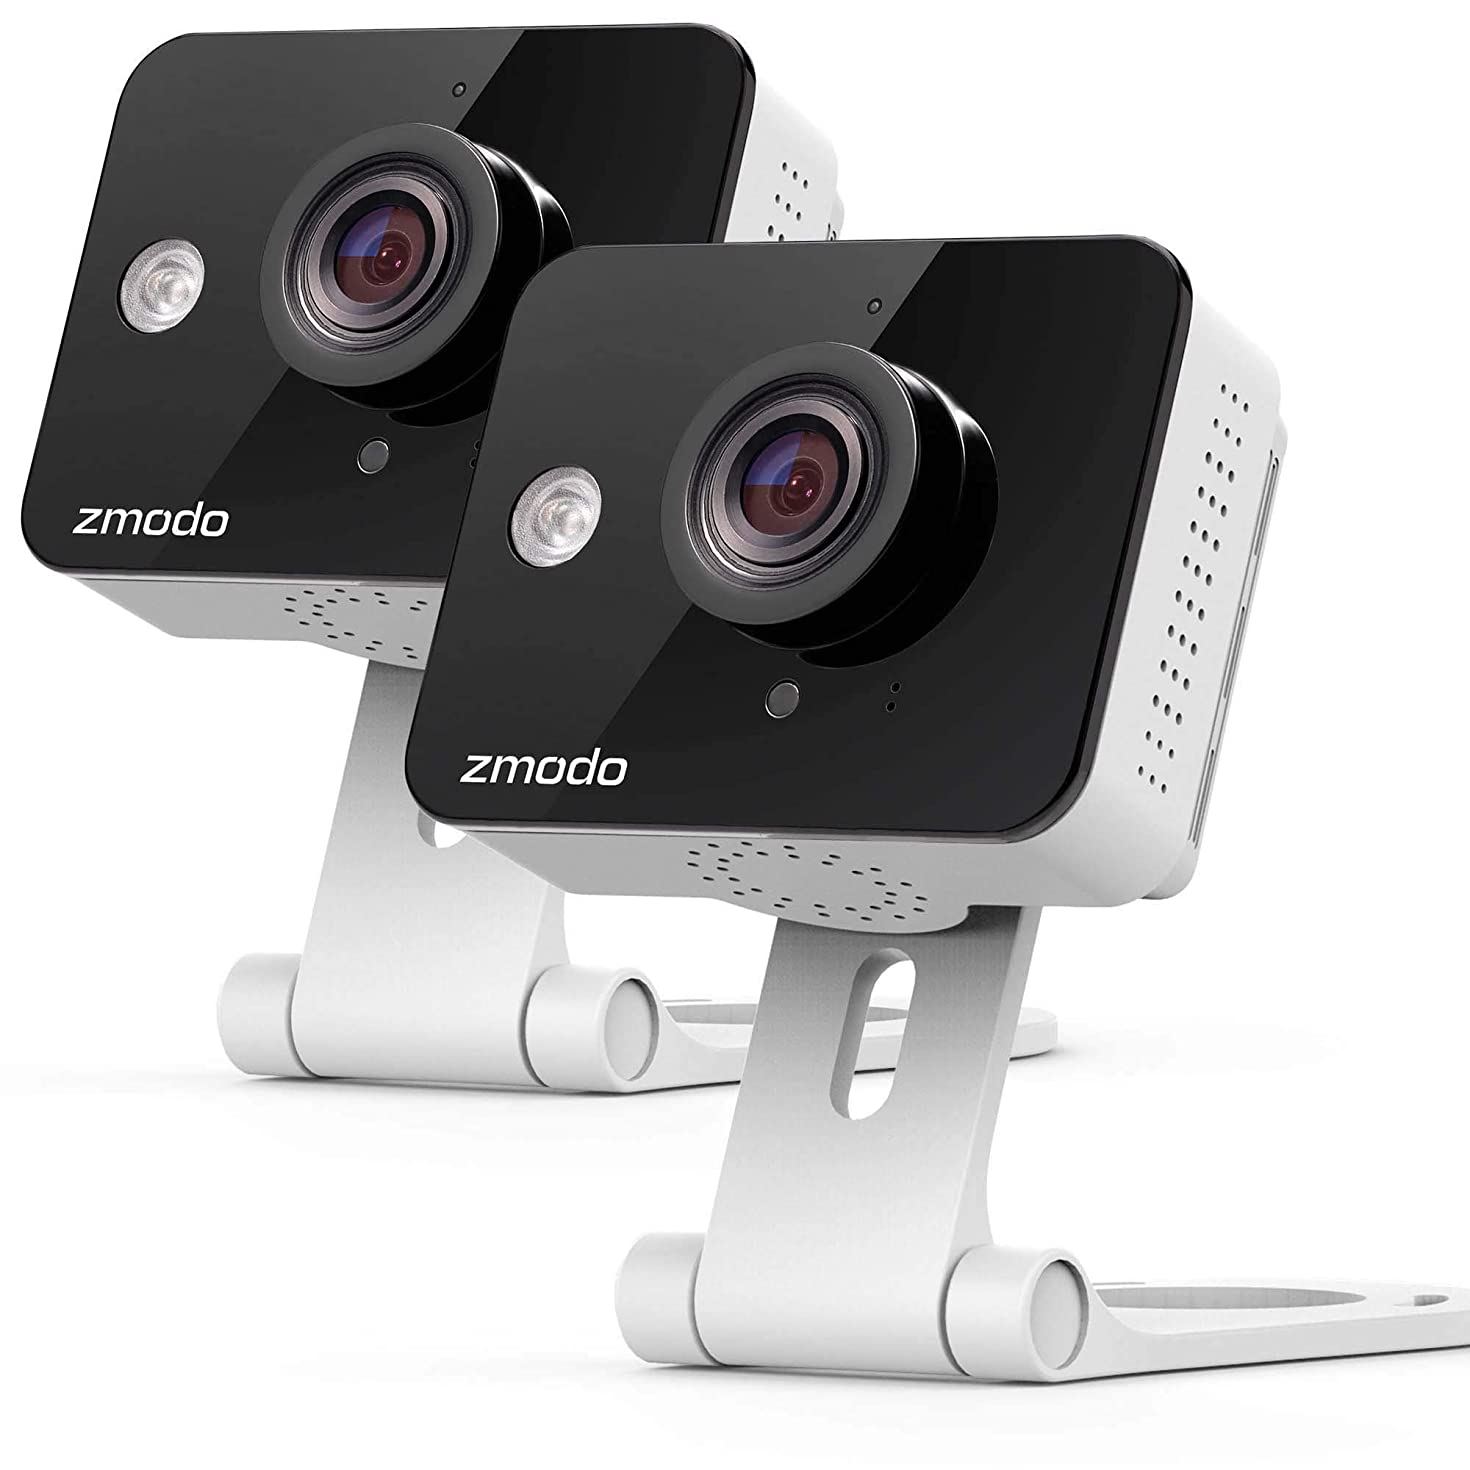 Zmodo Wireless Security Camera System (2 Pack) Smart HD WiFi IP Cameras with Night Vision (Renewed)